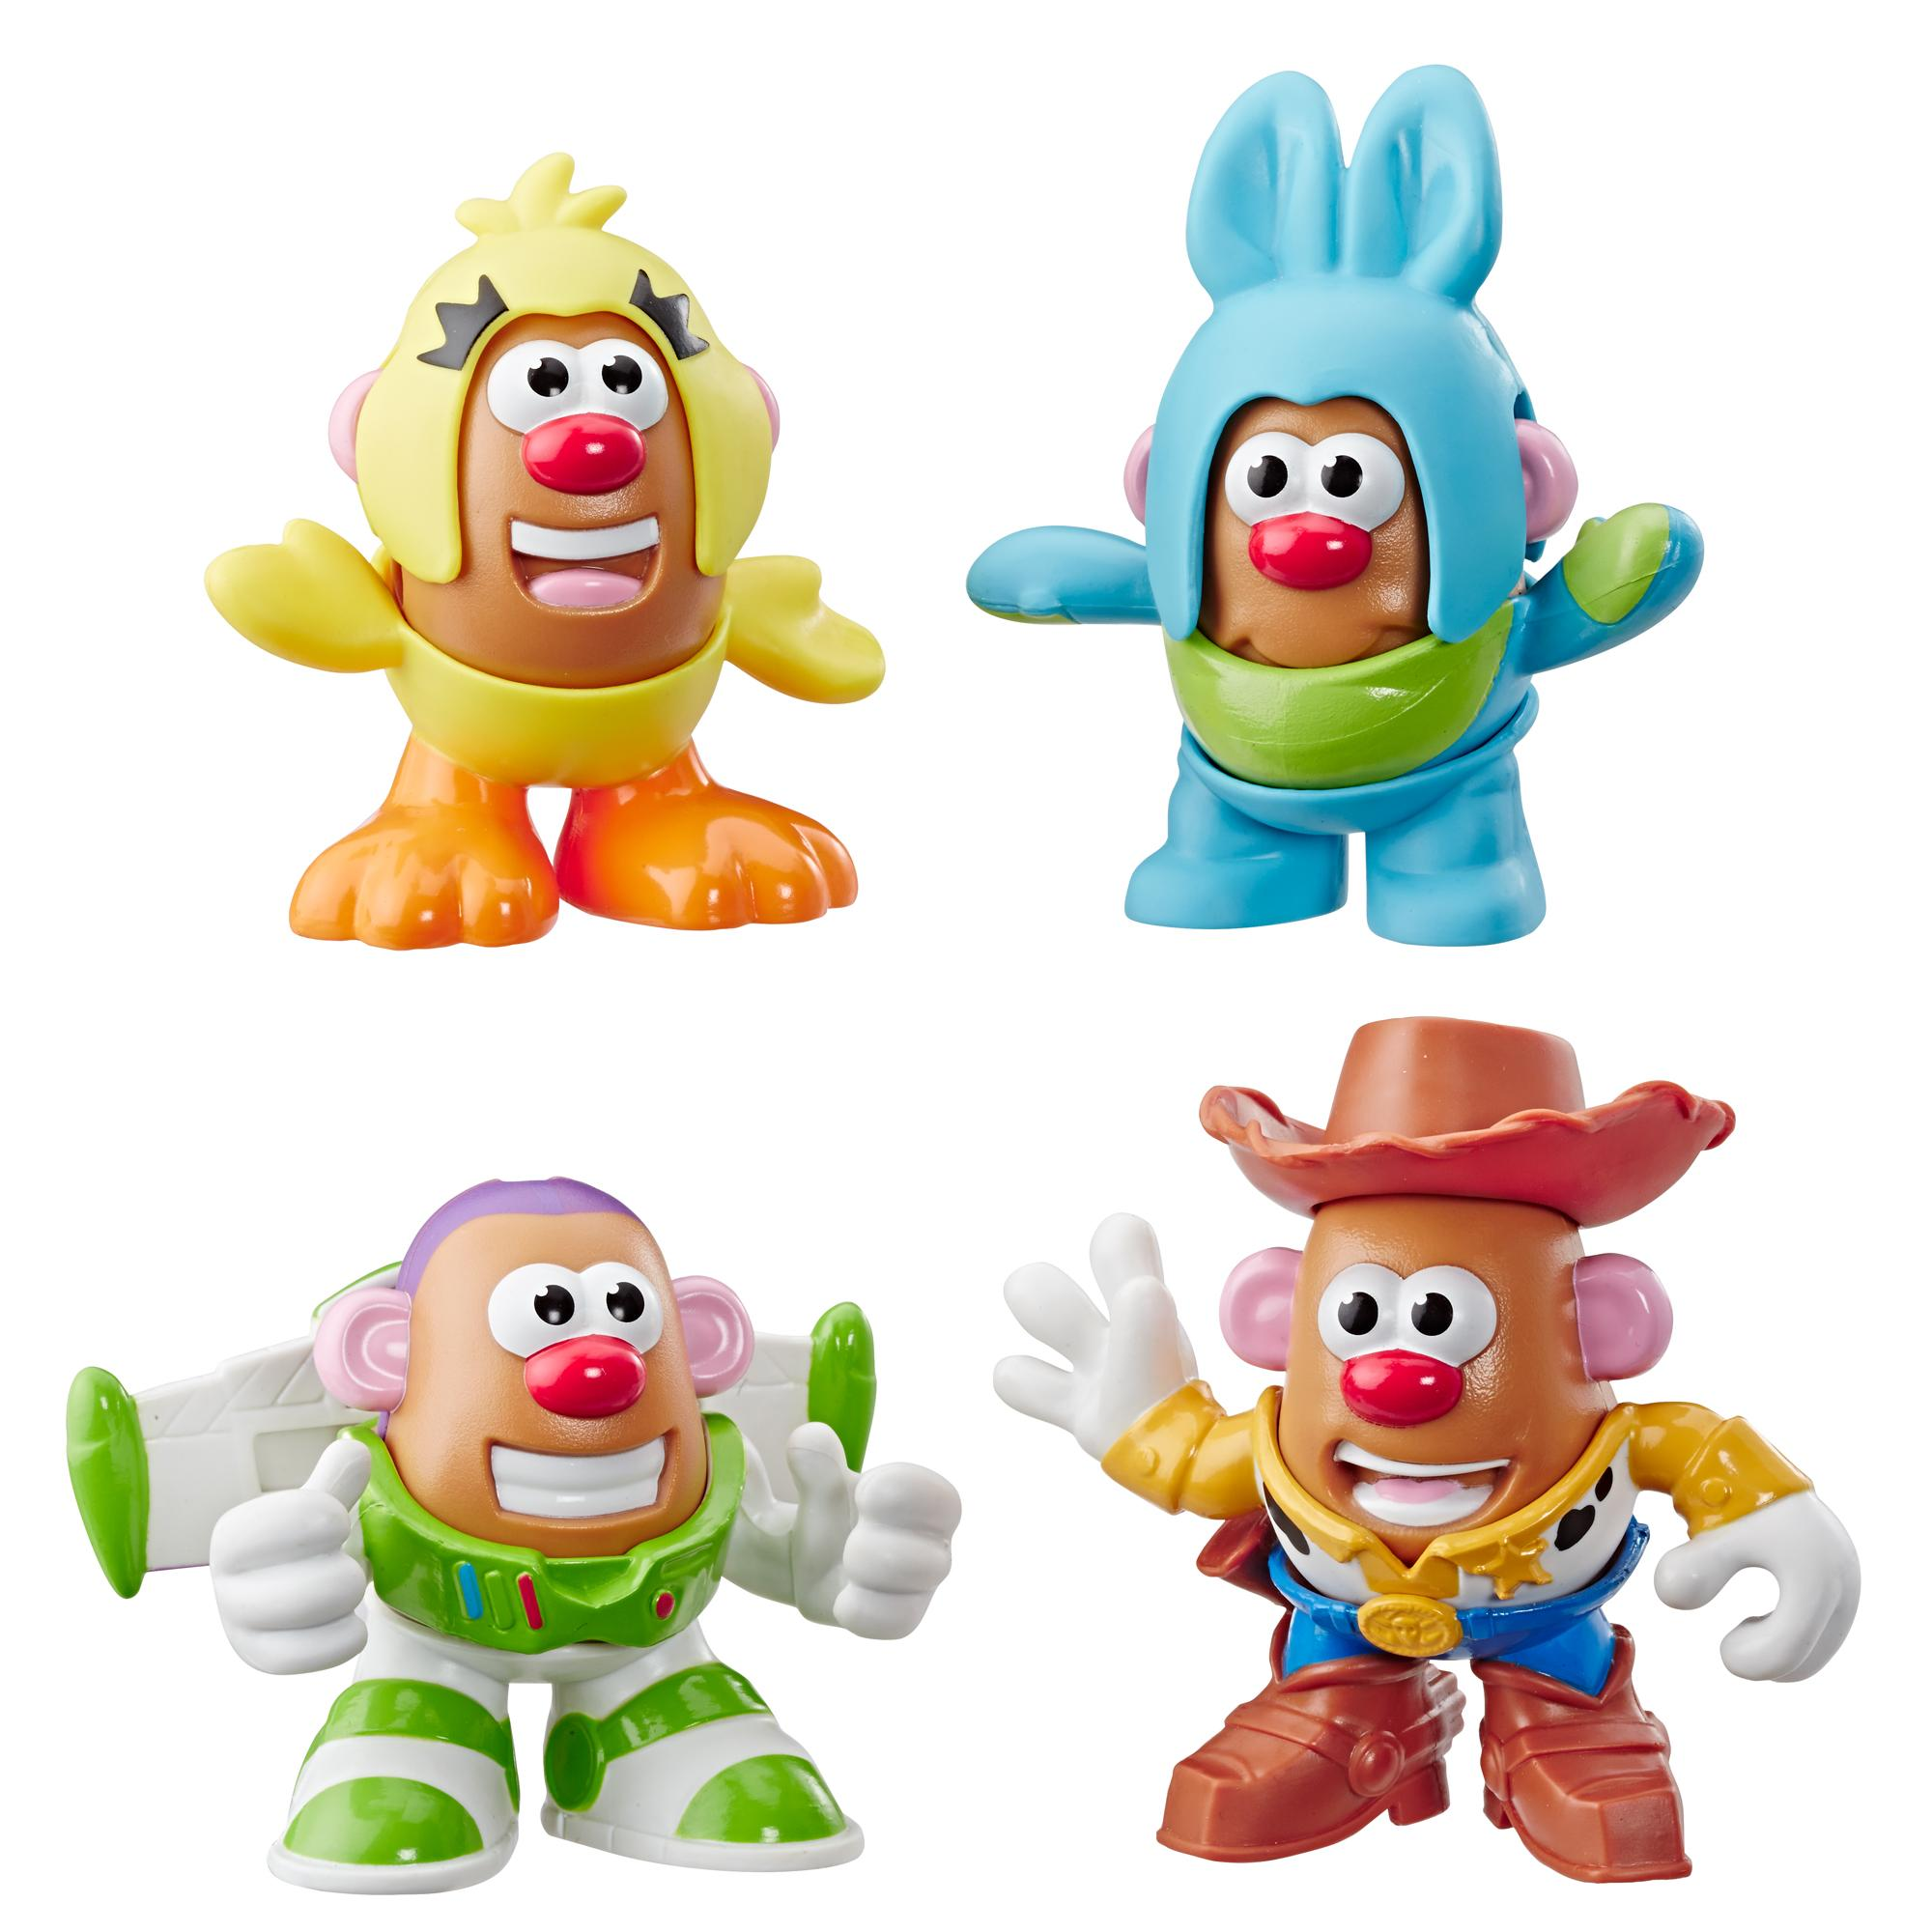 Mr. Potato Head Disney/Pixar Toy Story Mini 4 Pack